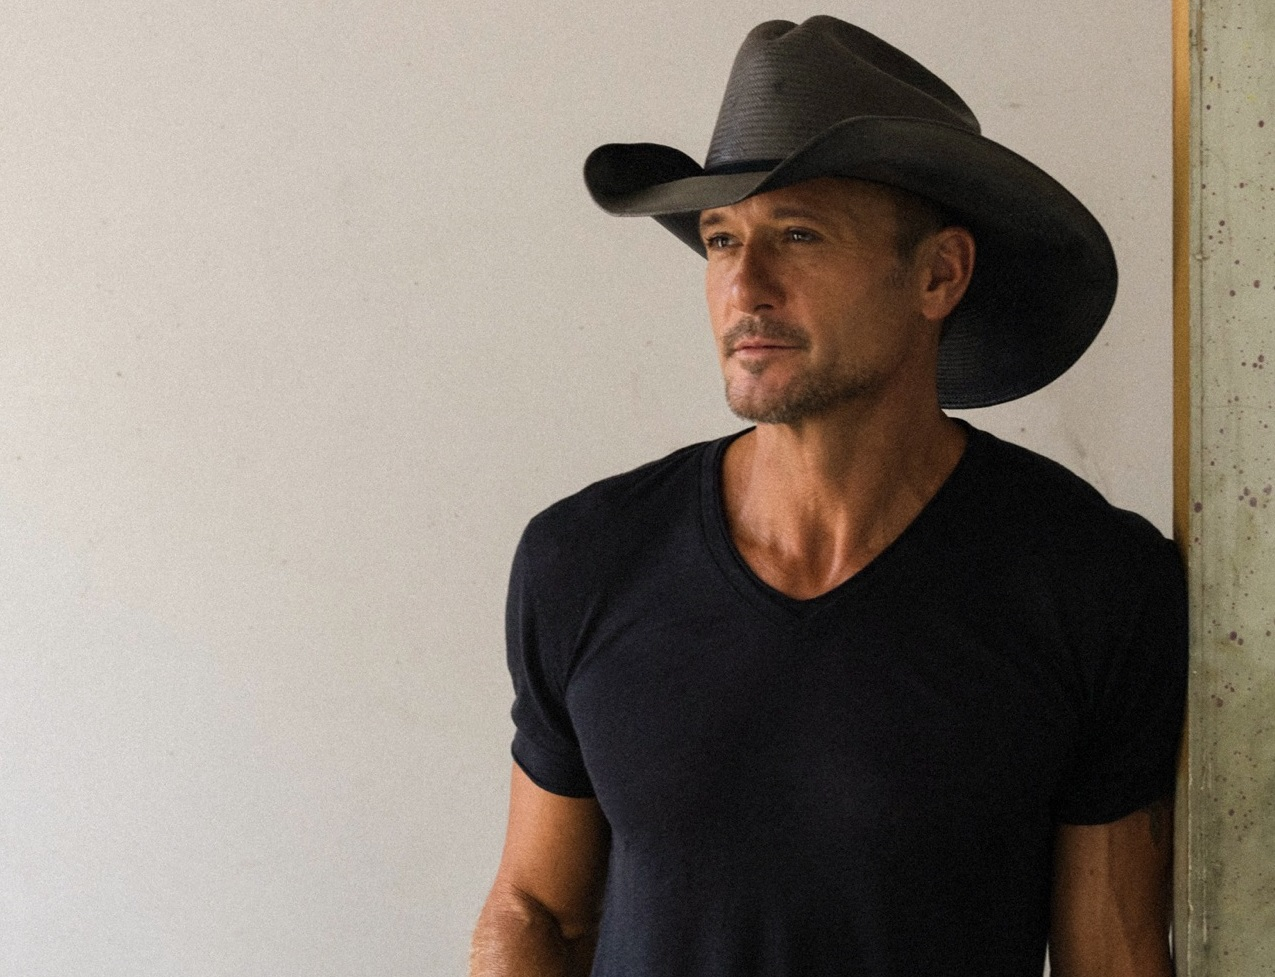 Tim McGraw Supports Students Speaking Out Following Florida Shooting